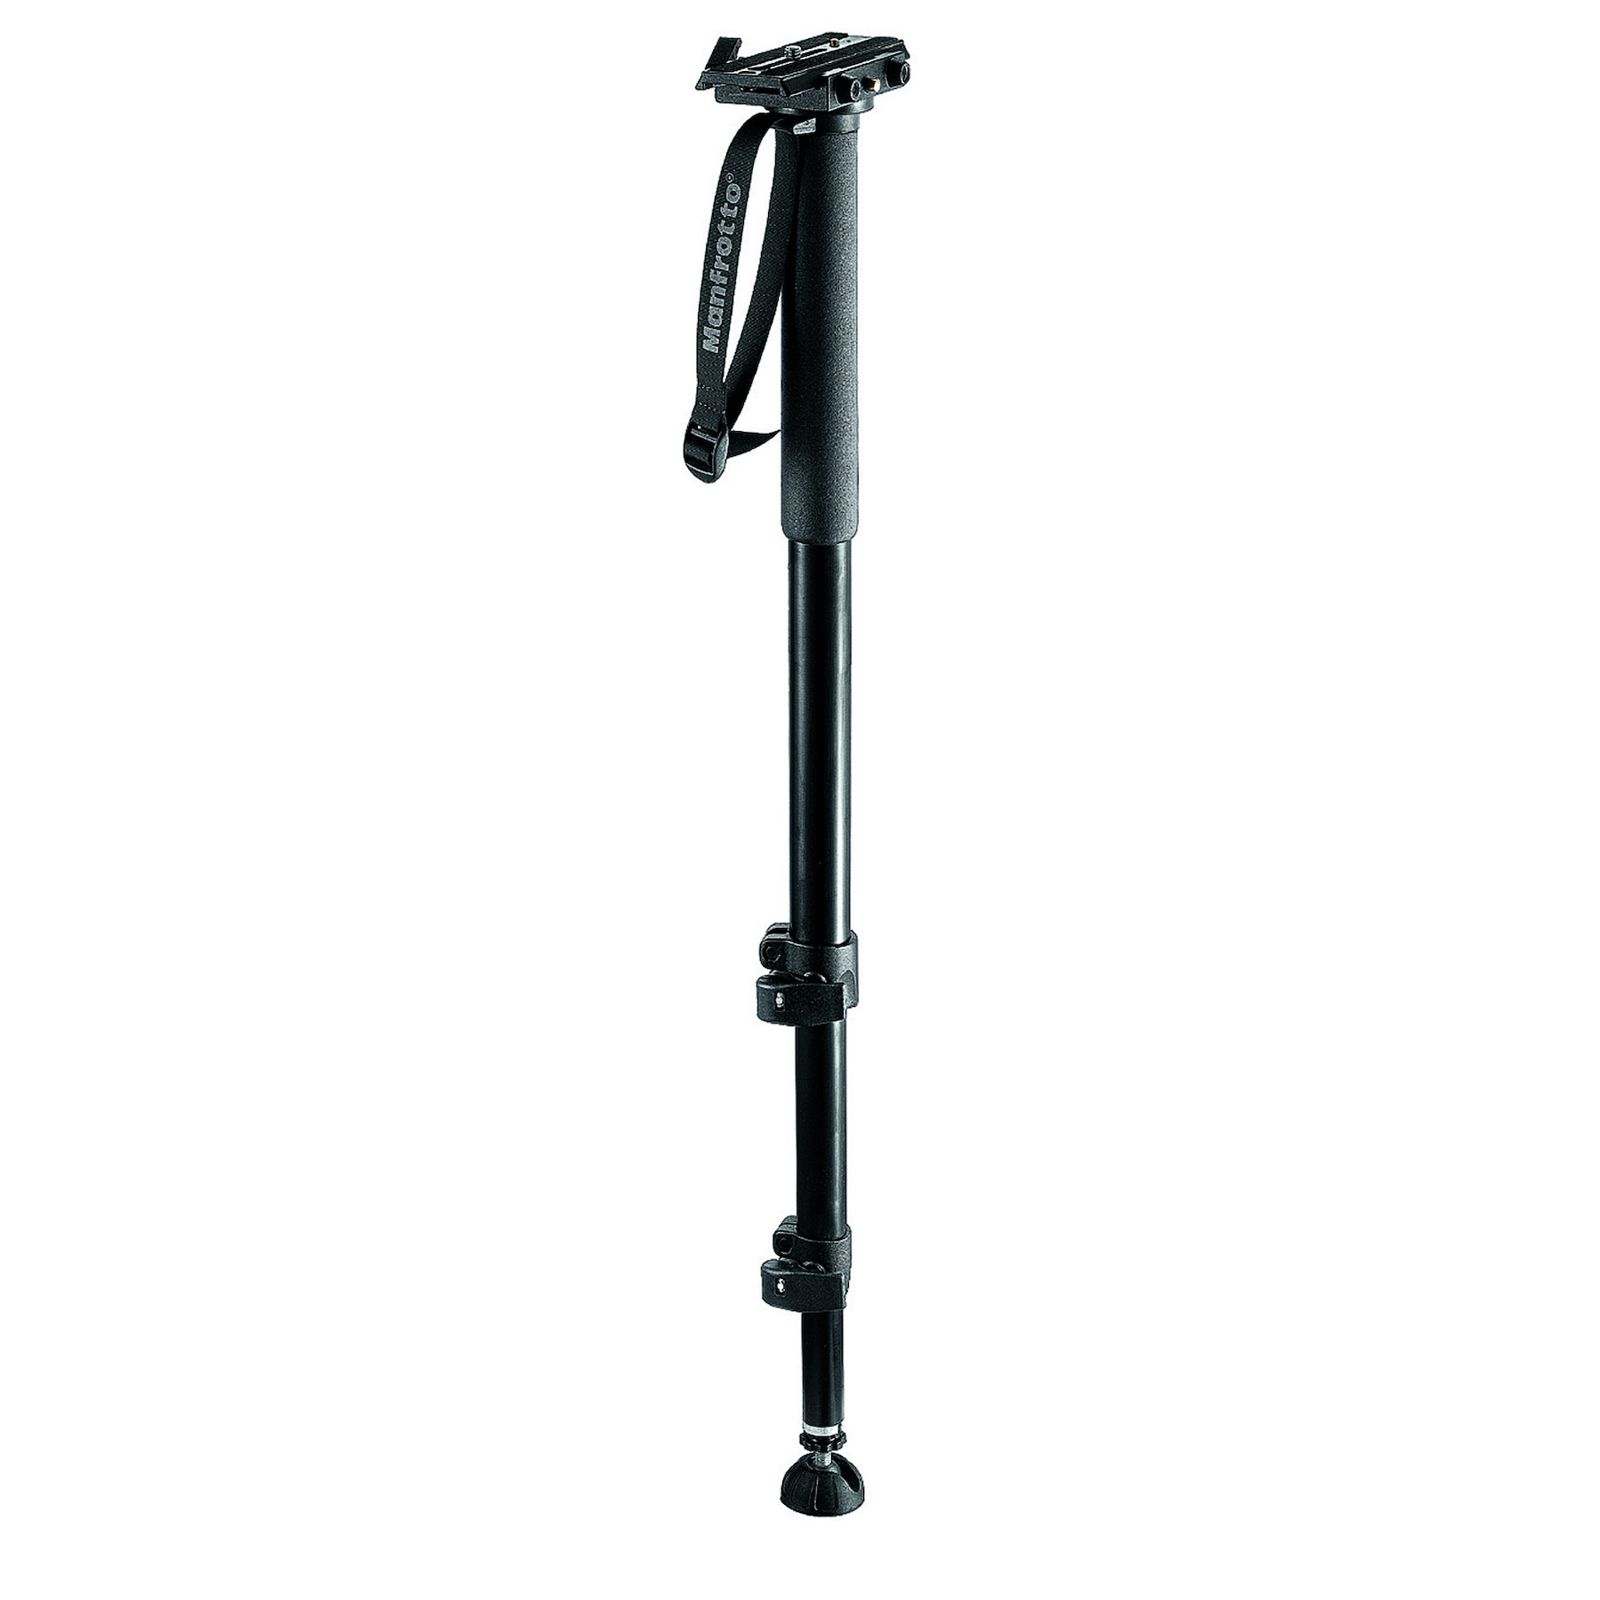 MANFROTTO 557B PRO VIDEO MONOPOD